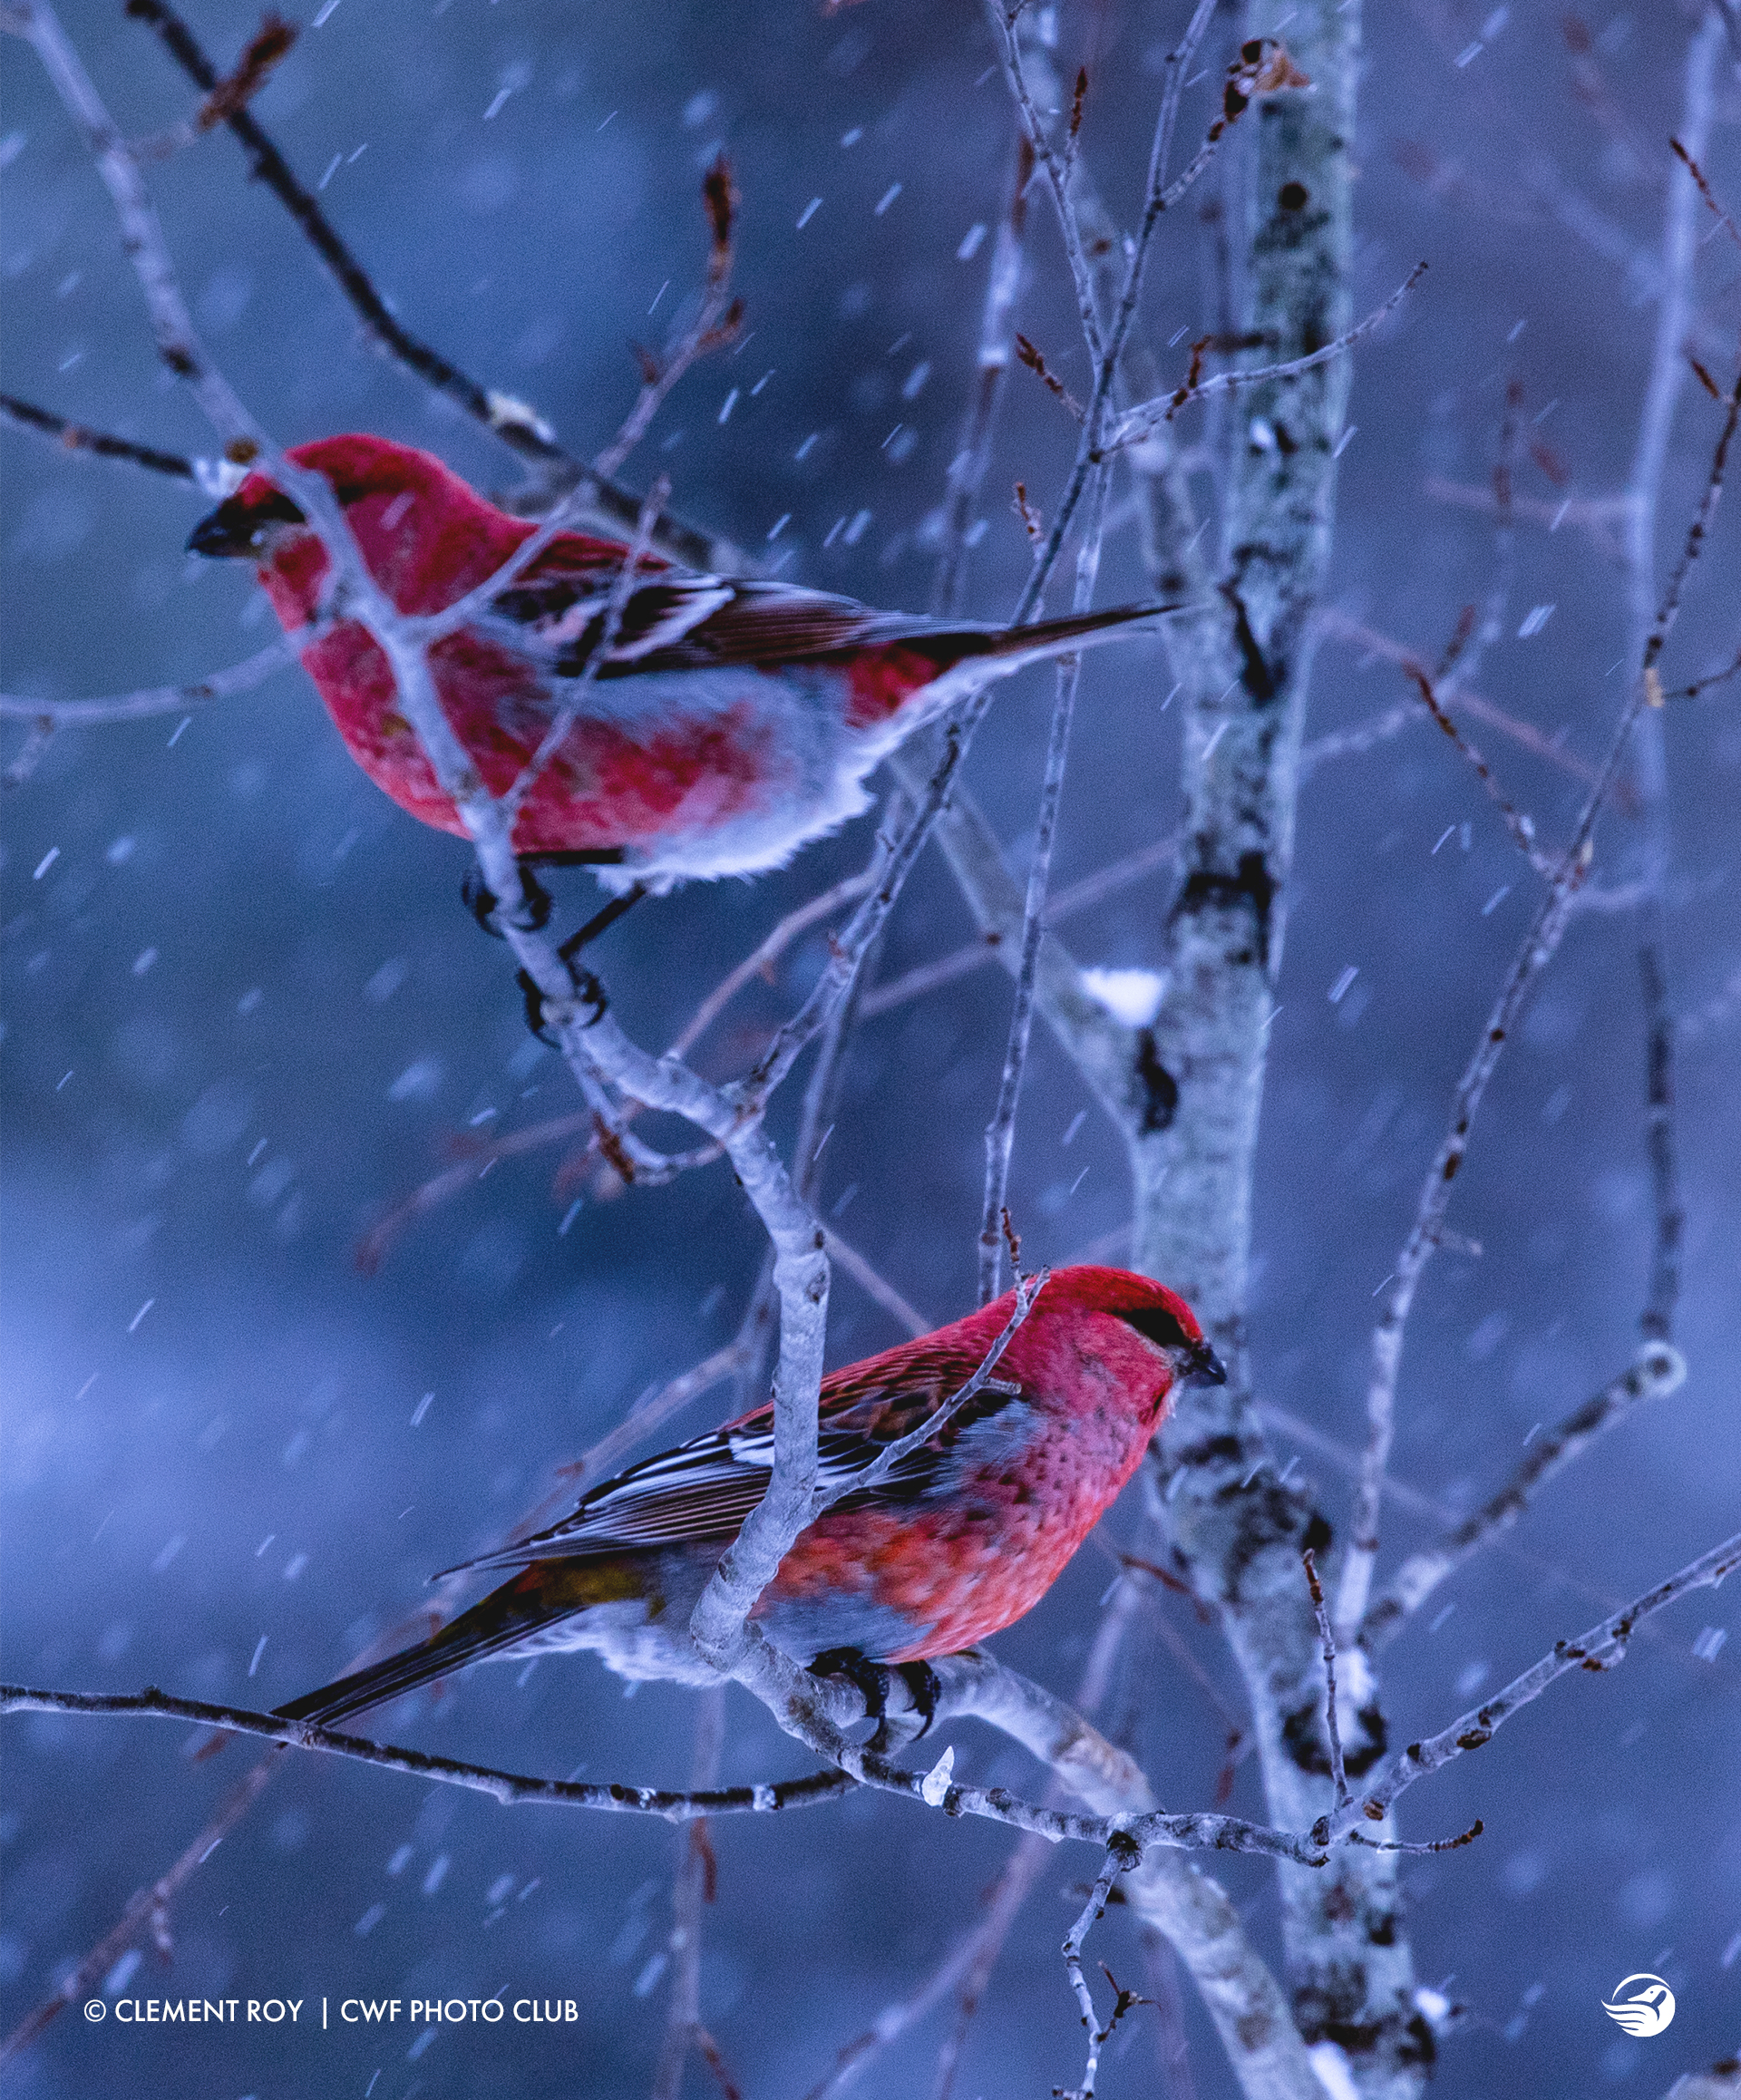 clement-roy-birds-winter-snow